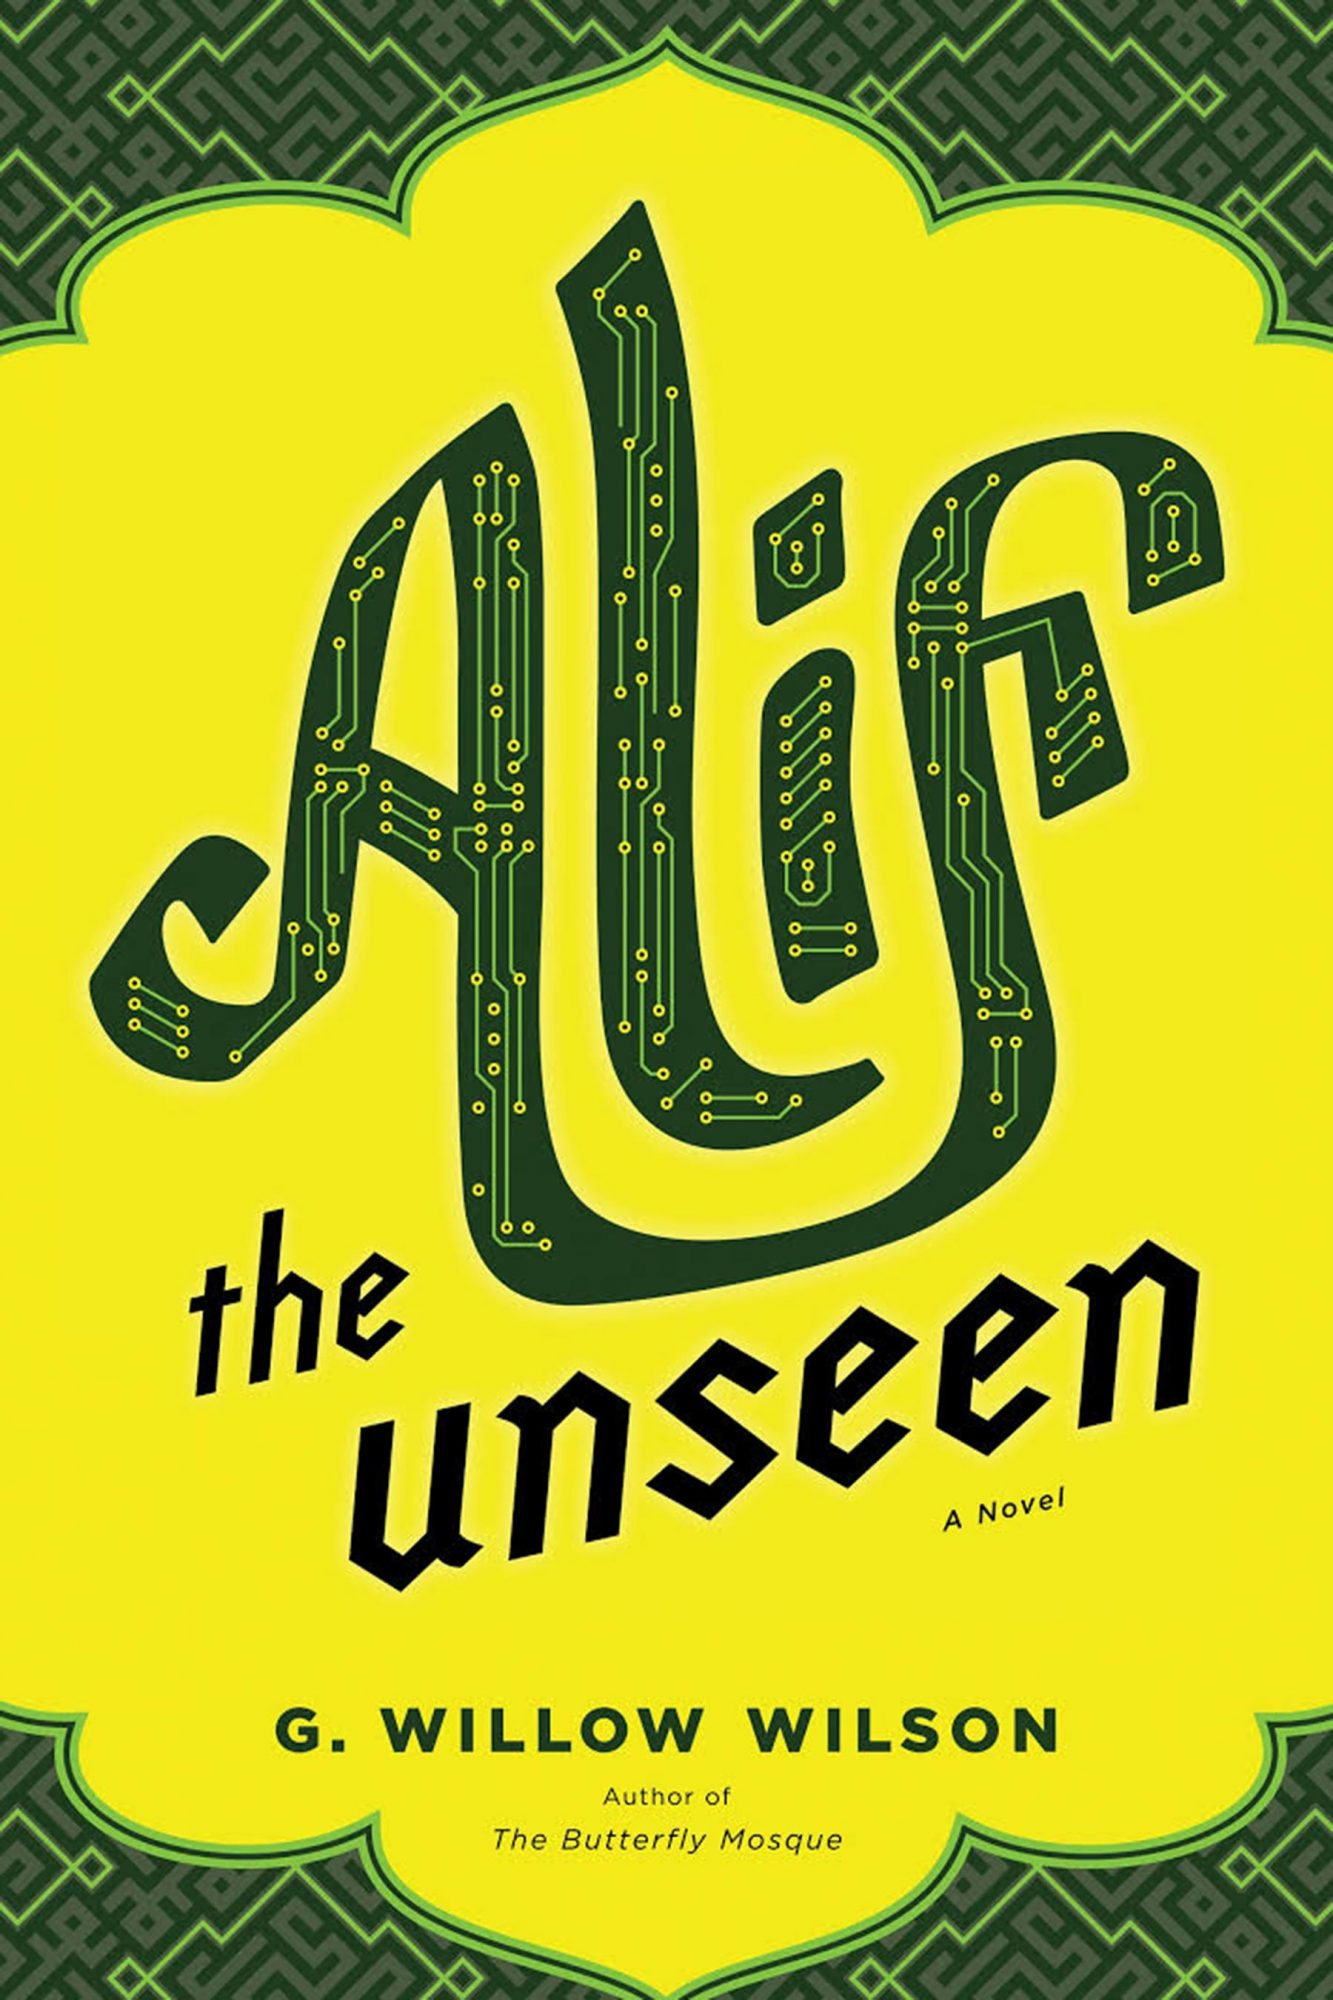 Alif the Unseen by G. Willow Wilson CR: Grove/Atlantic, Inc.